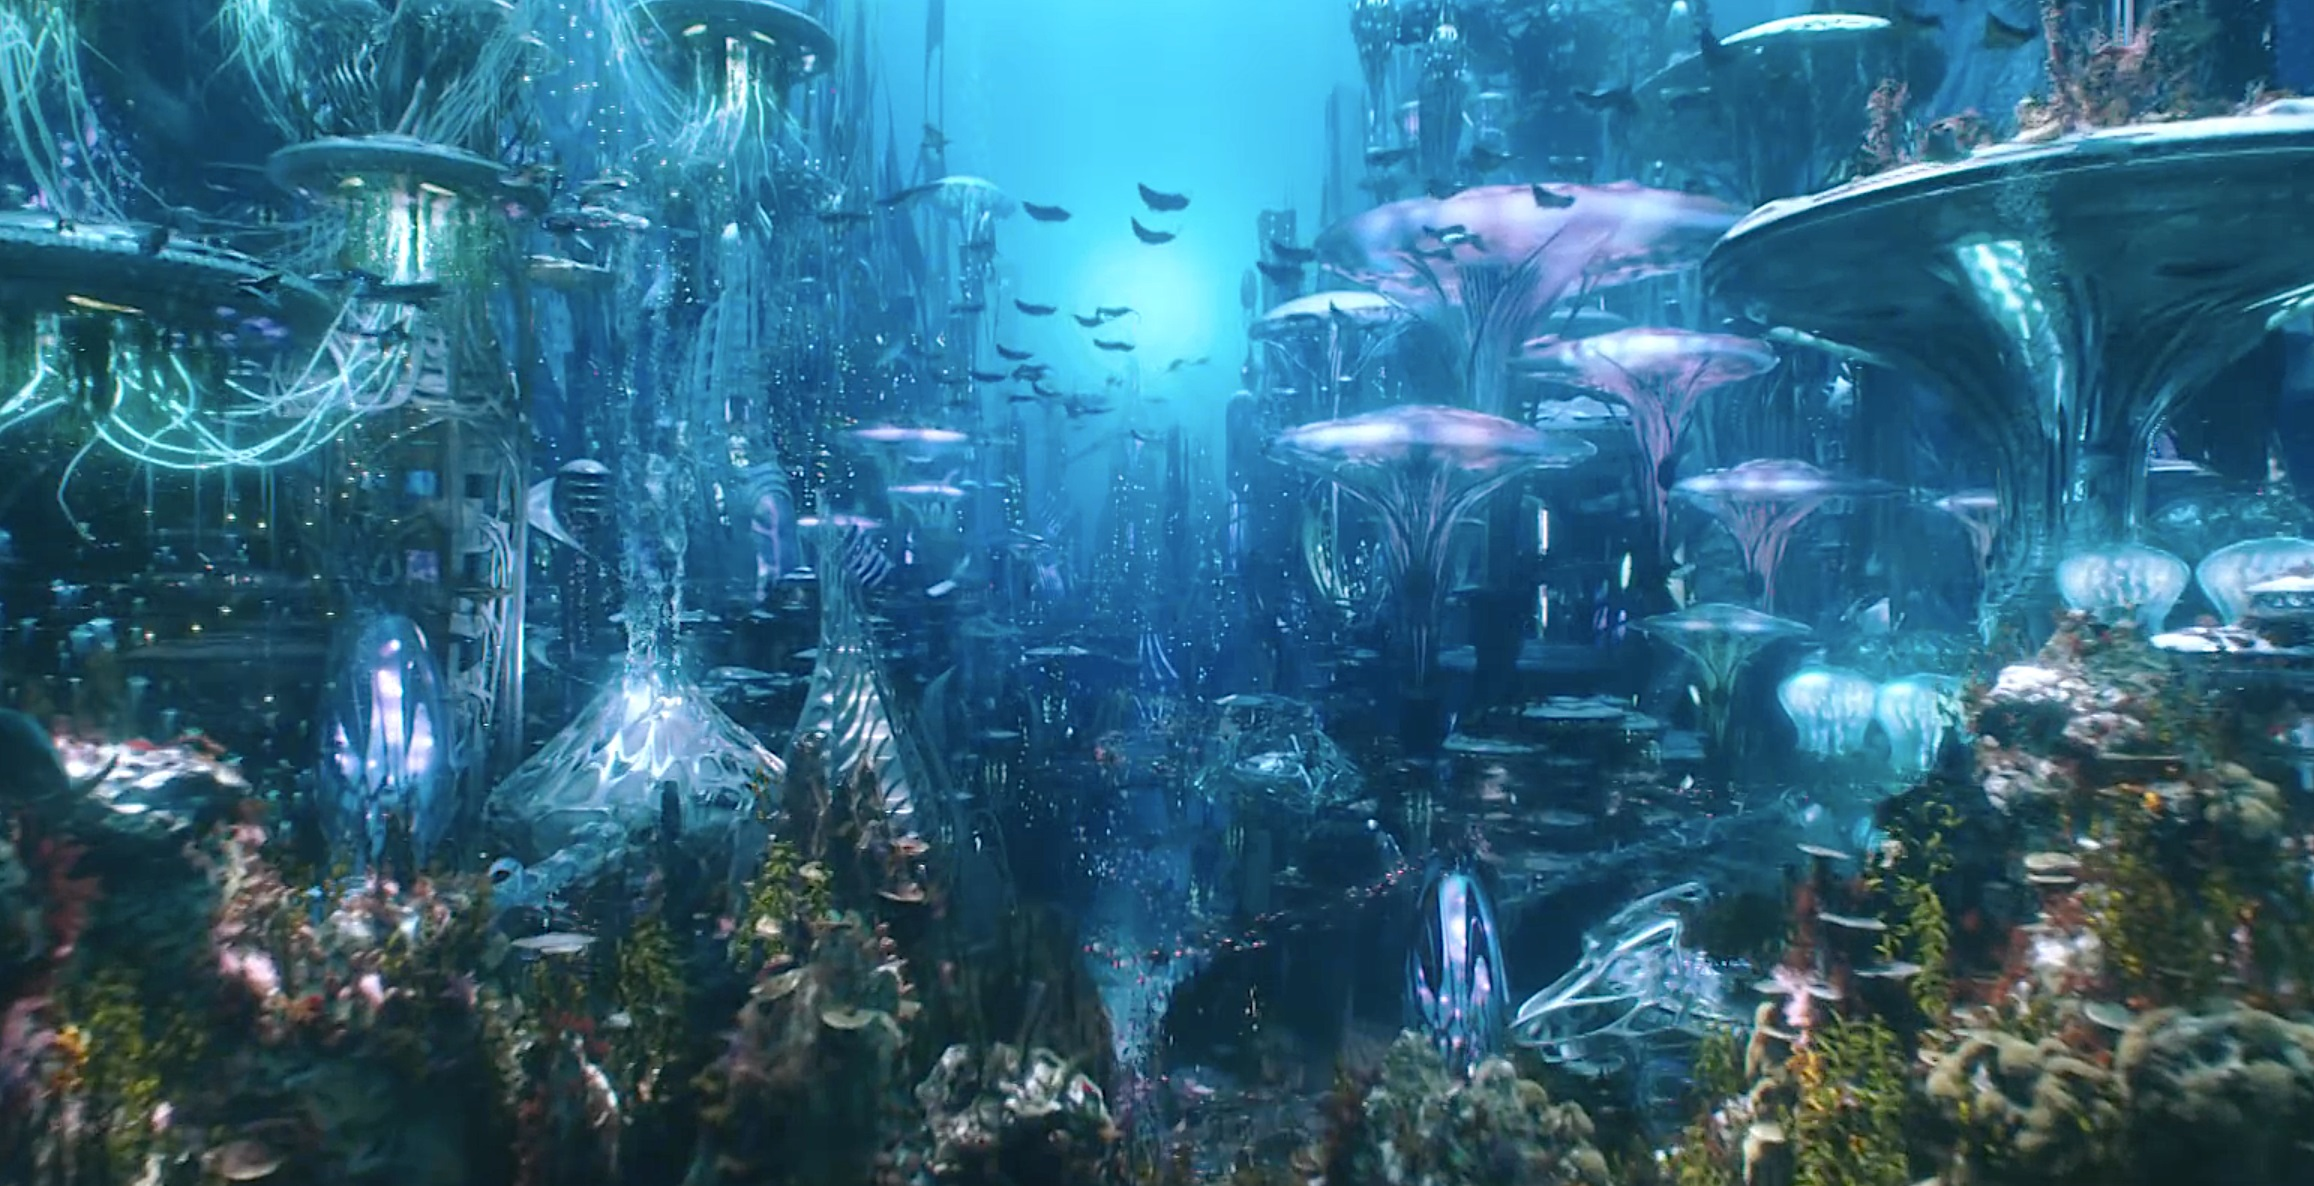 The city of Atlantis in Aquaman (2018)